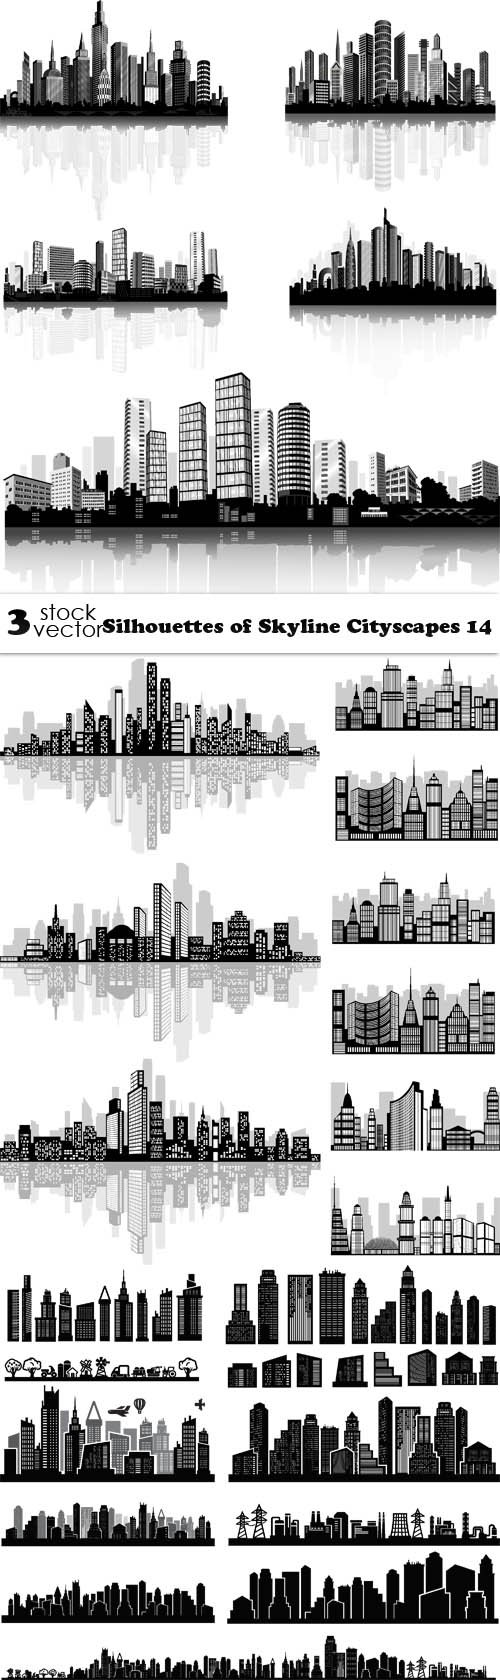 Vectors - Silhouettes of Skyline Cityscapes 14